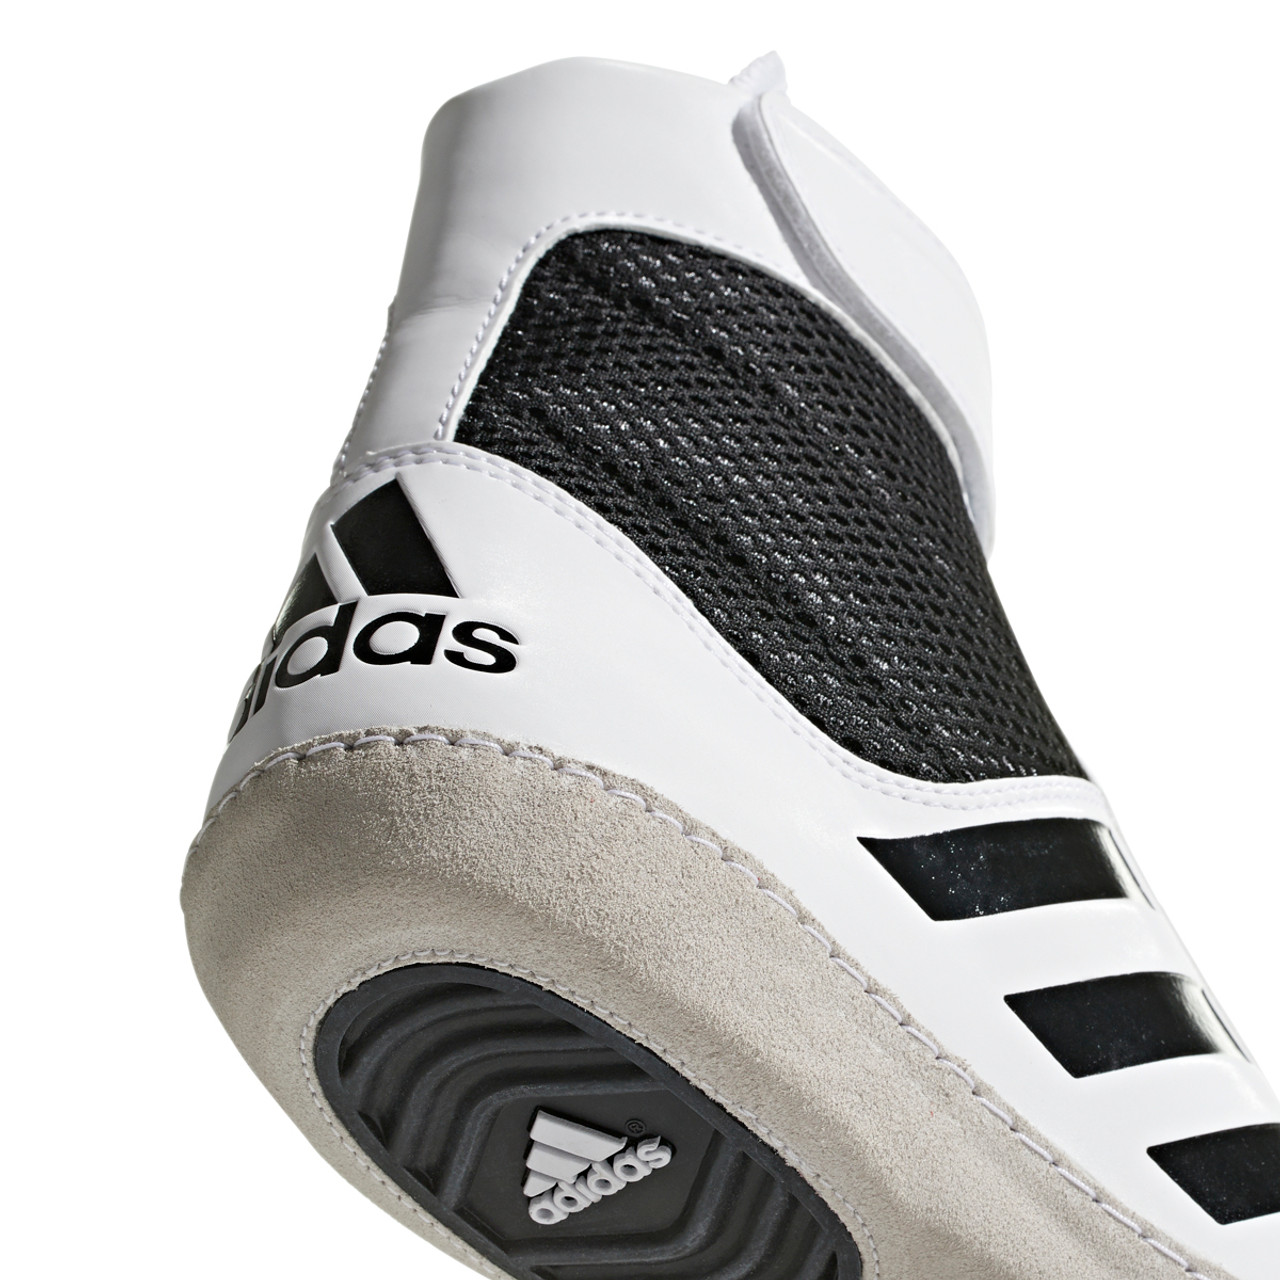 Adidas Combat Speed 5 Adult Wrestling Shoes AC7501 White, Black